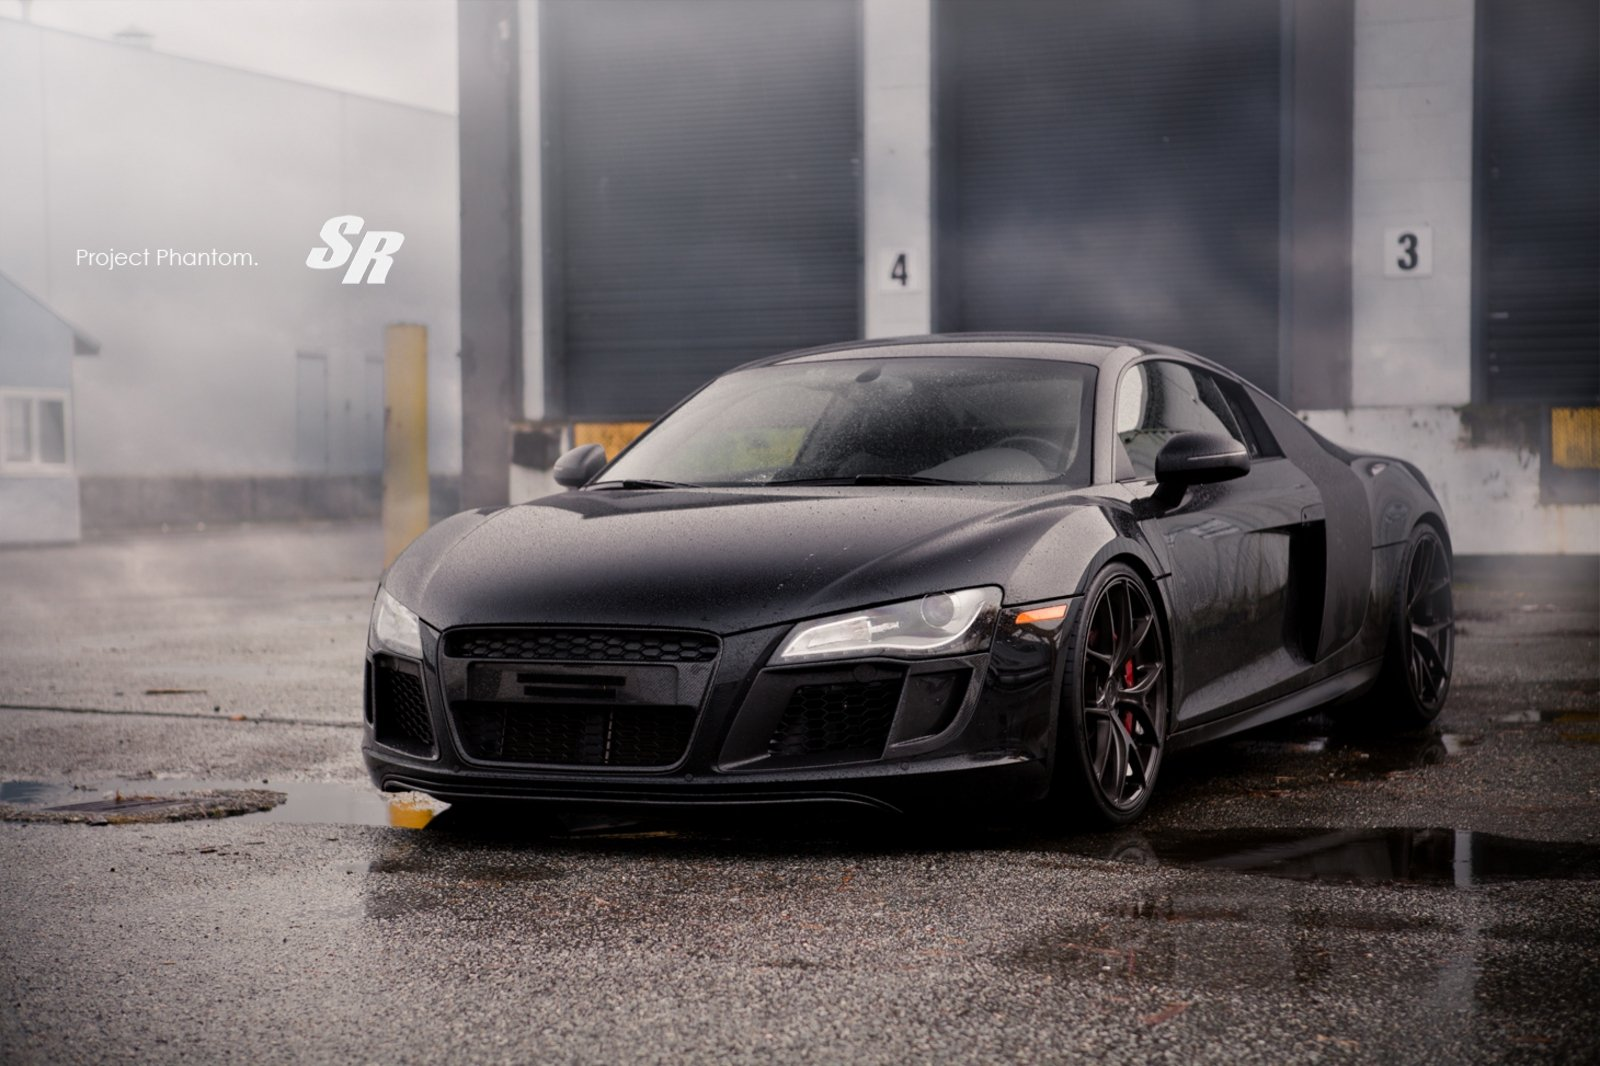 2013 audi r8 project phantom by sr auto group review top speed. Black Bedroom Furniture Sets. Home Design Ideas